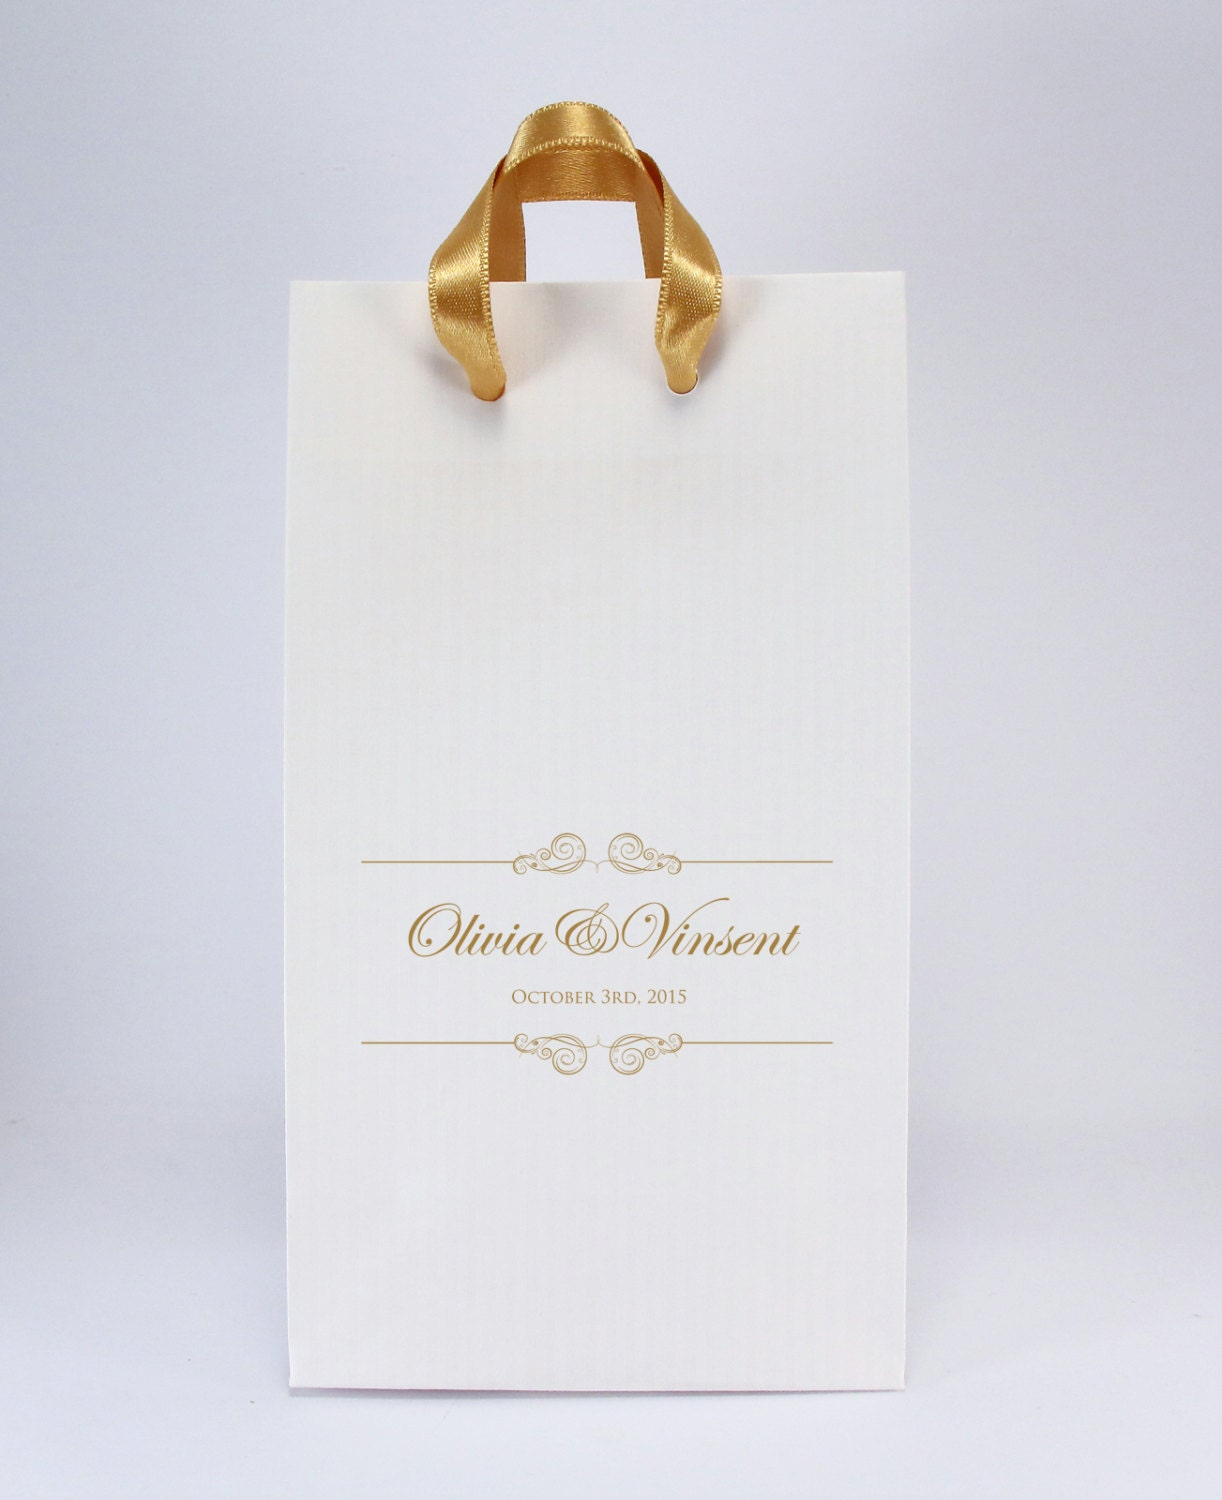 Wedding Favor Bags With Ribbon : Personalized Wedding Favor Bags with Satin Ribbon Handles Pk